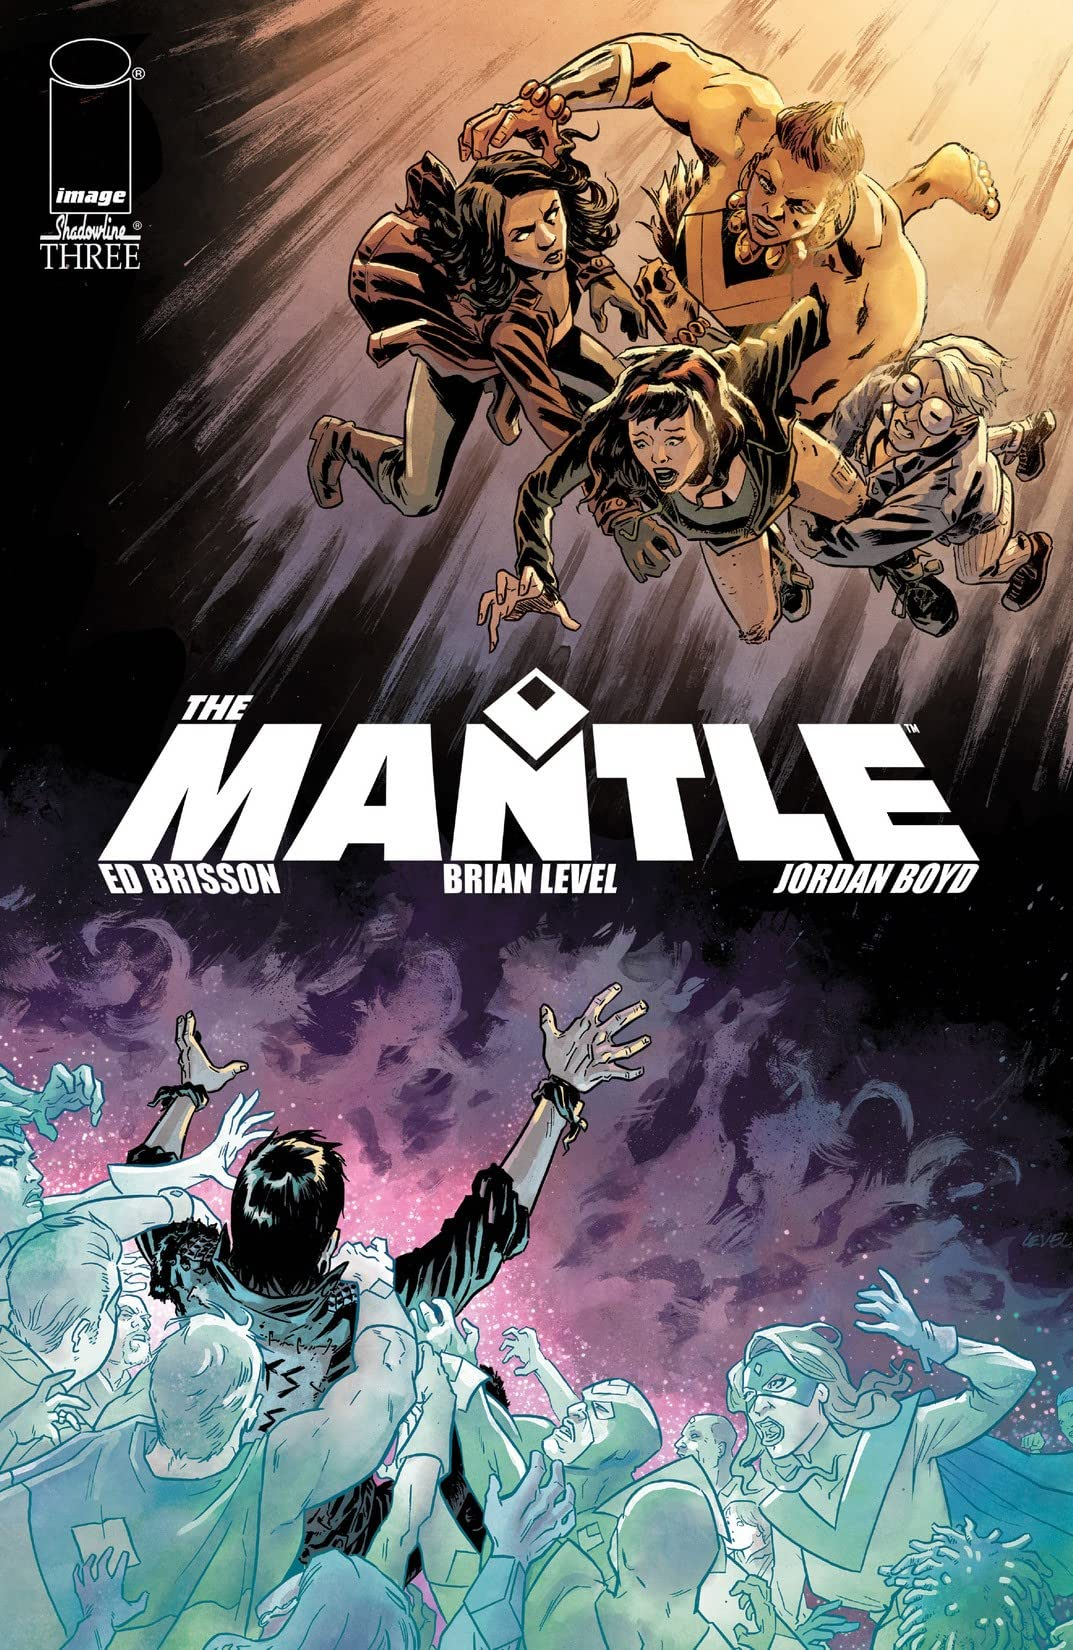 The Mantle #3